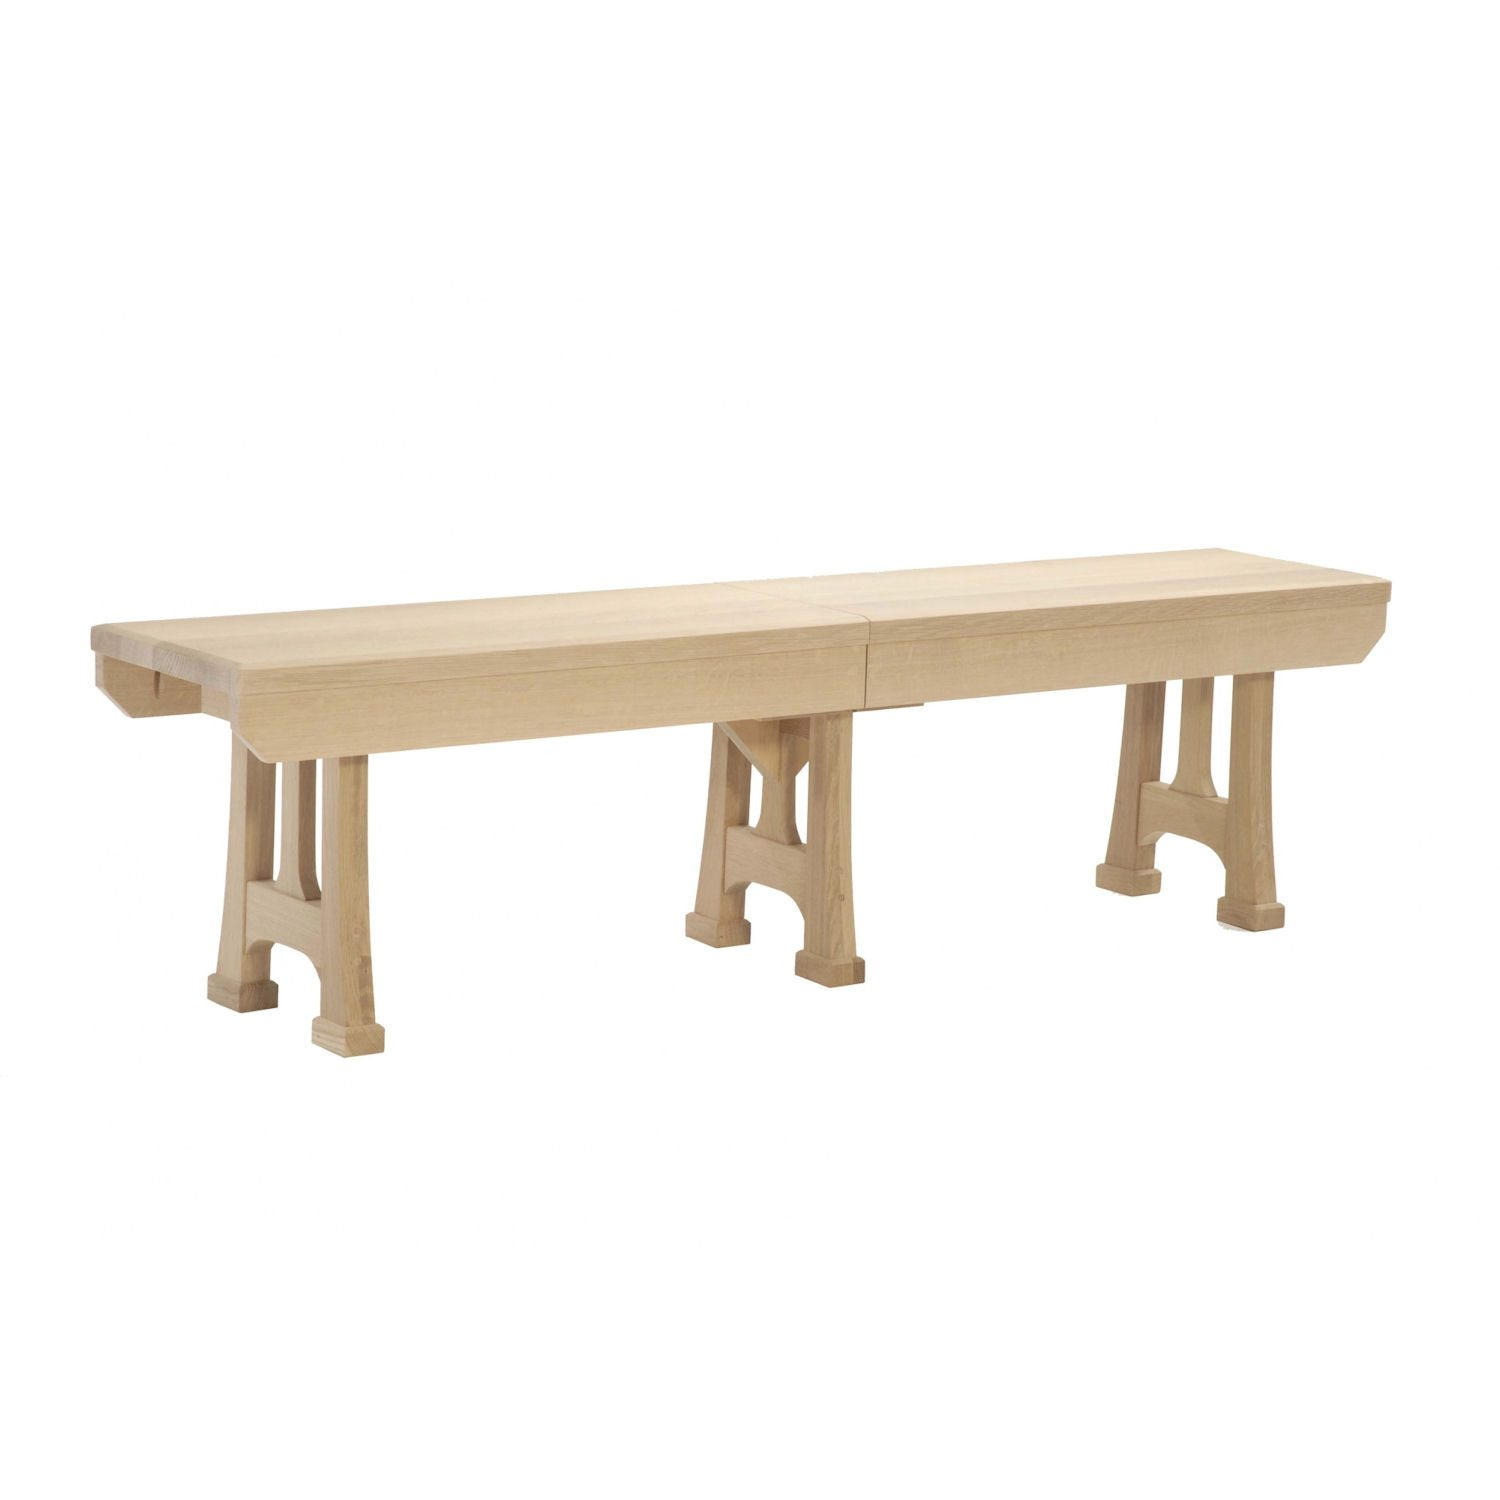 Christy Trestle Table Set Extension Dining Bench